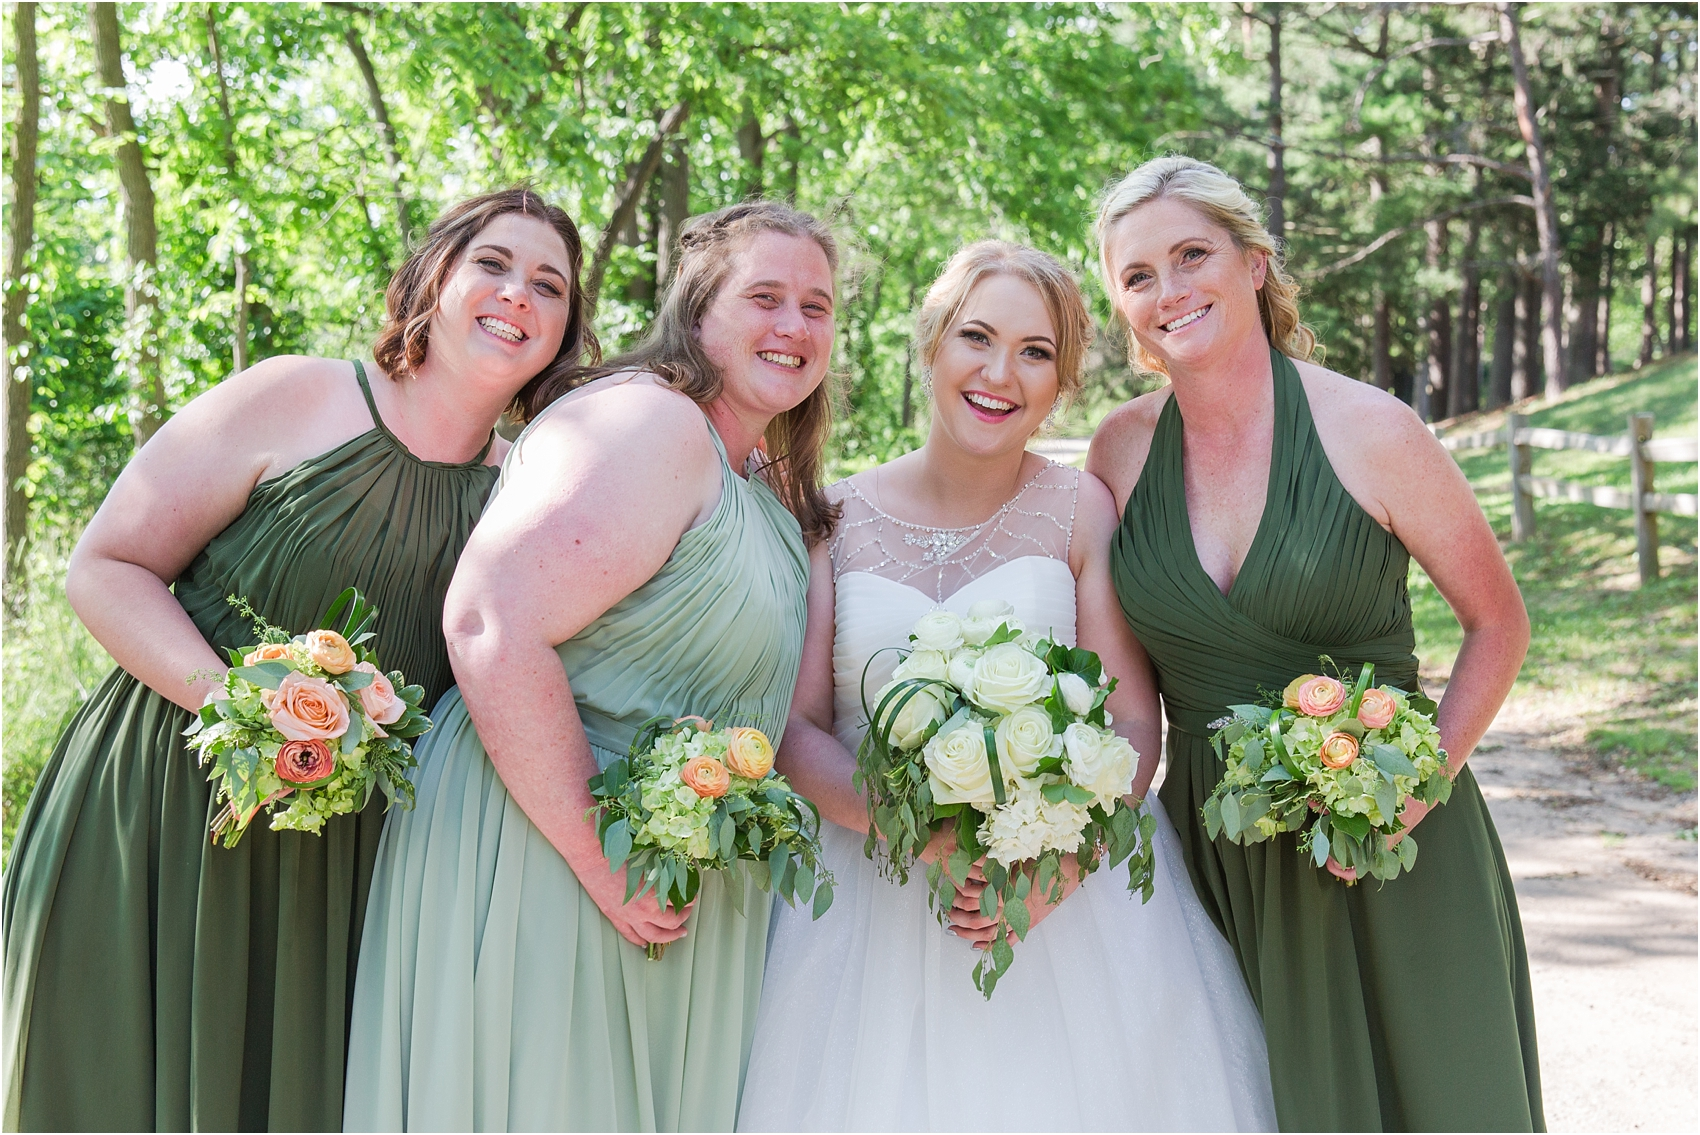 lord-of-the-rings-inspired-wedding-photos-at-crystal-gardens-in-howell-mi-by-courtney-carolyn-photography_0062.jpg